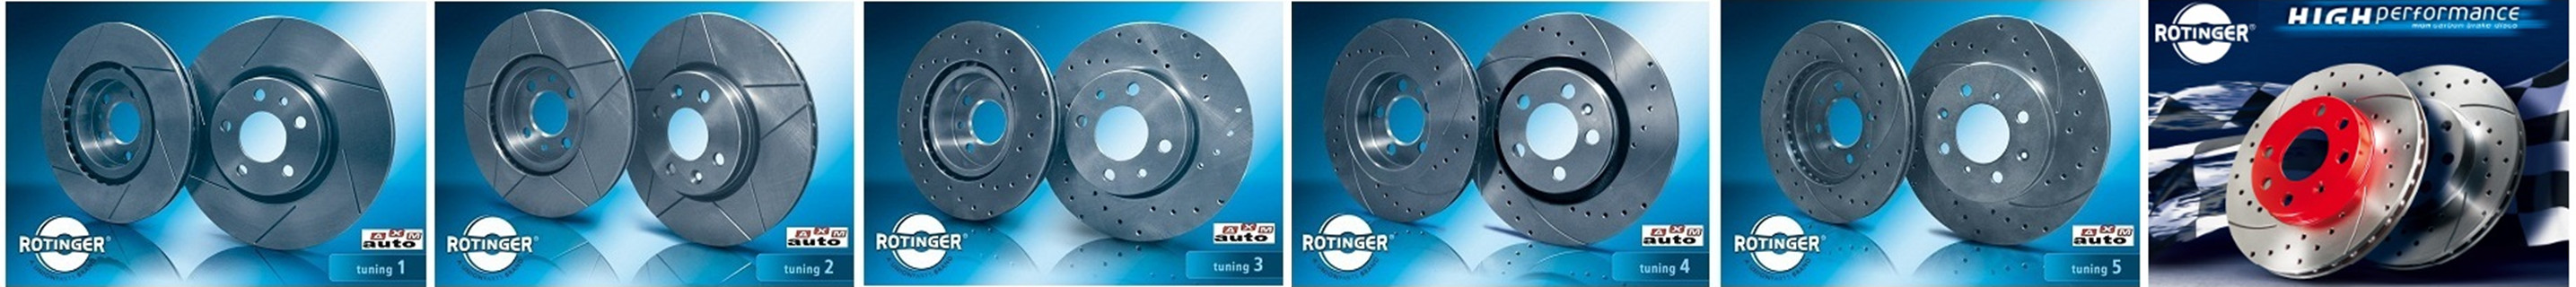 tuning brake disk rotinger.bg